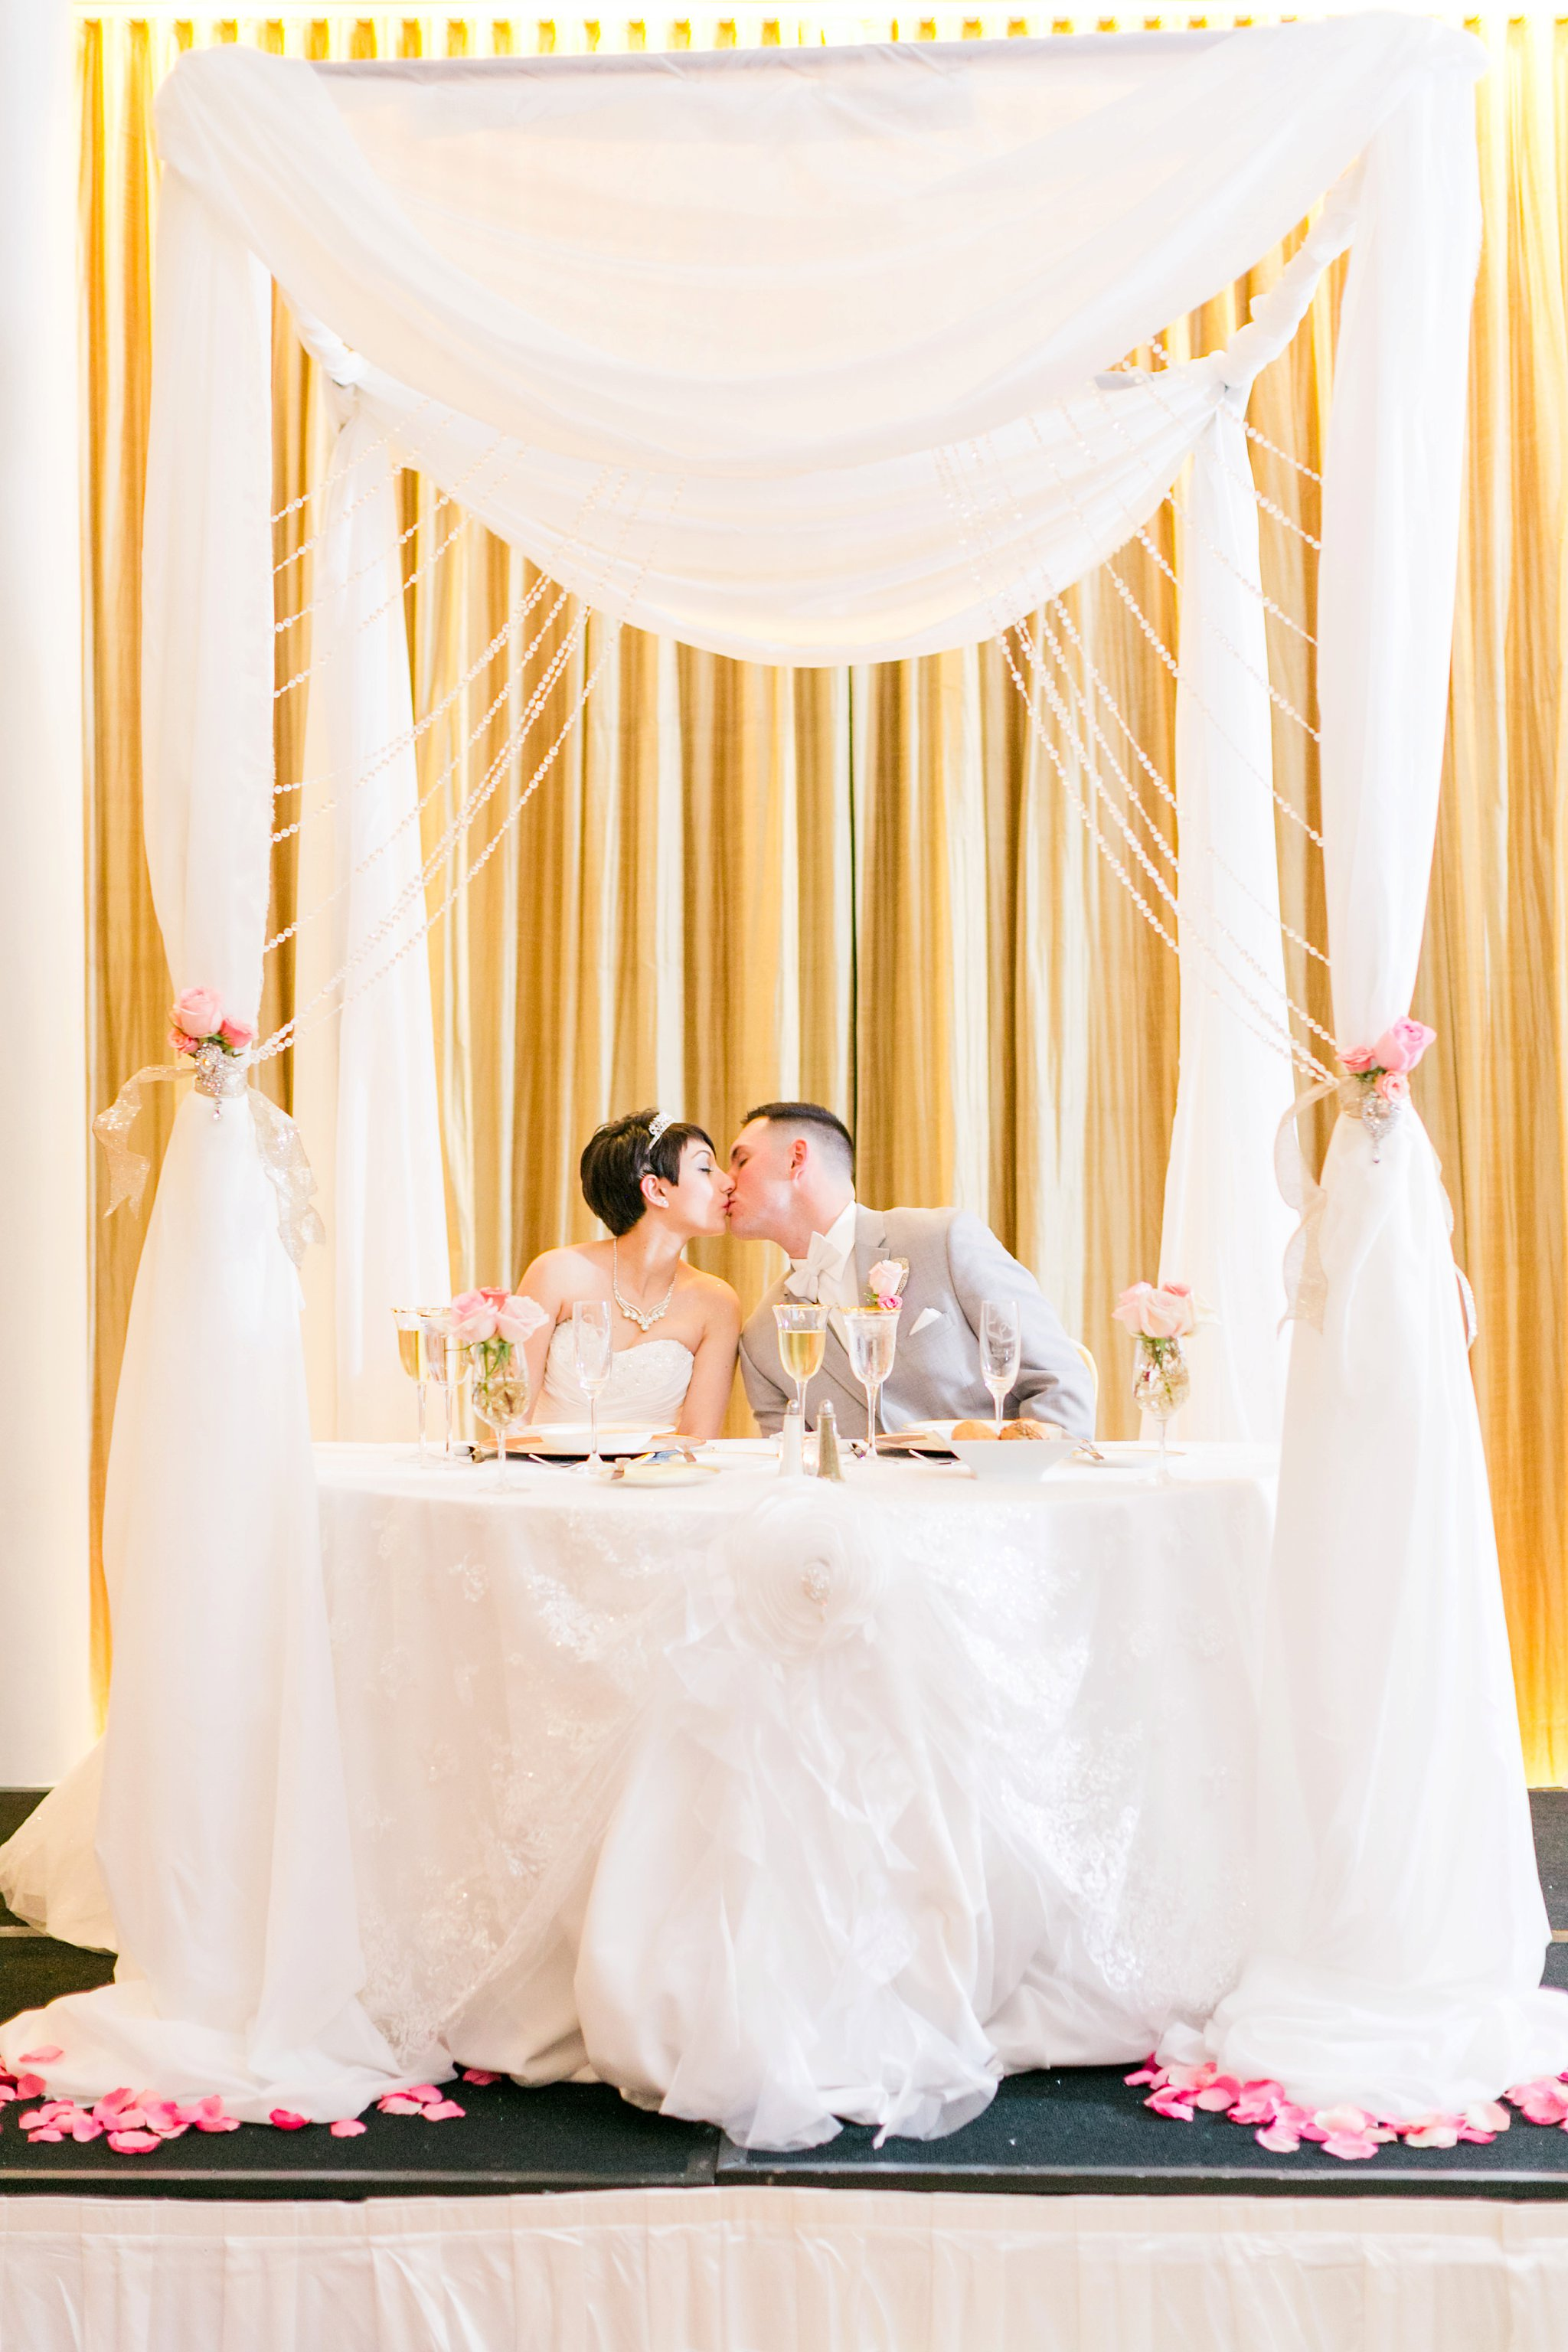 Mayflower Hotel Wedding Photos DC Pink & Gold Winter Wedding Tori & Tyler-433_photo.jpg